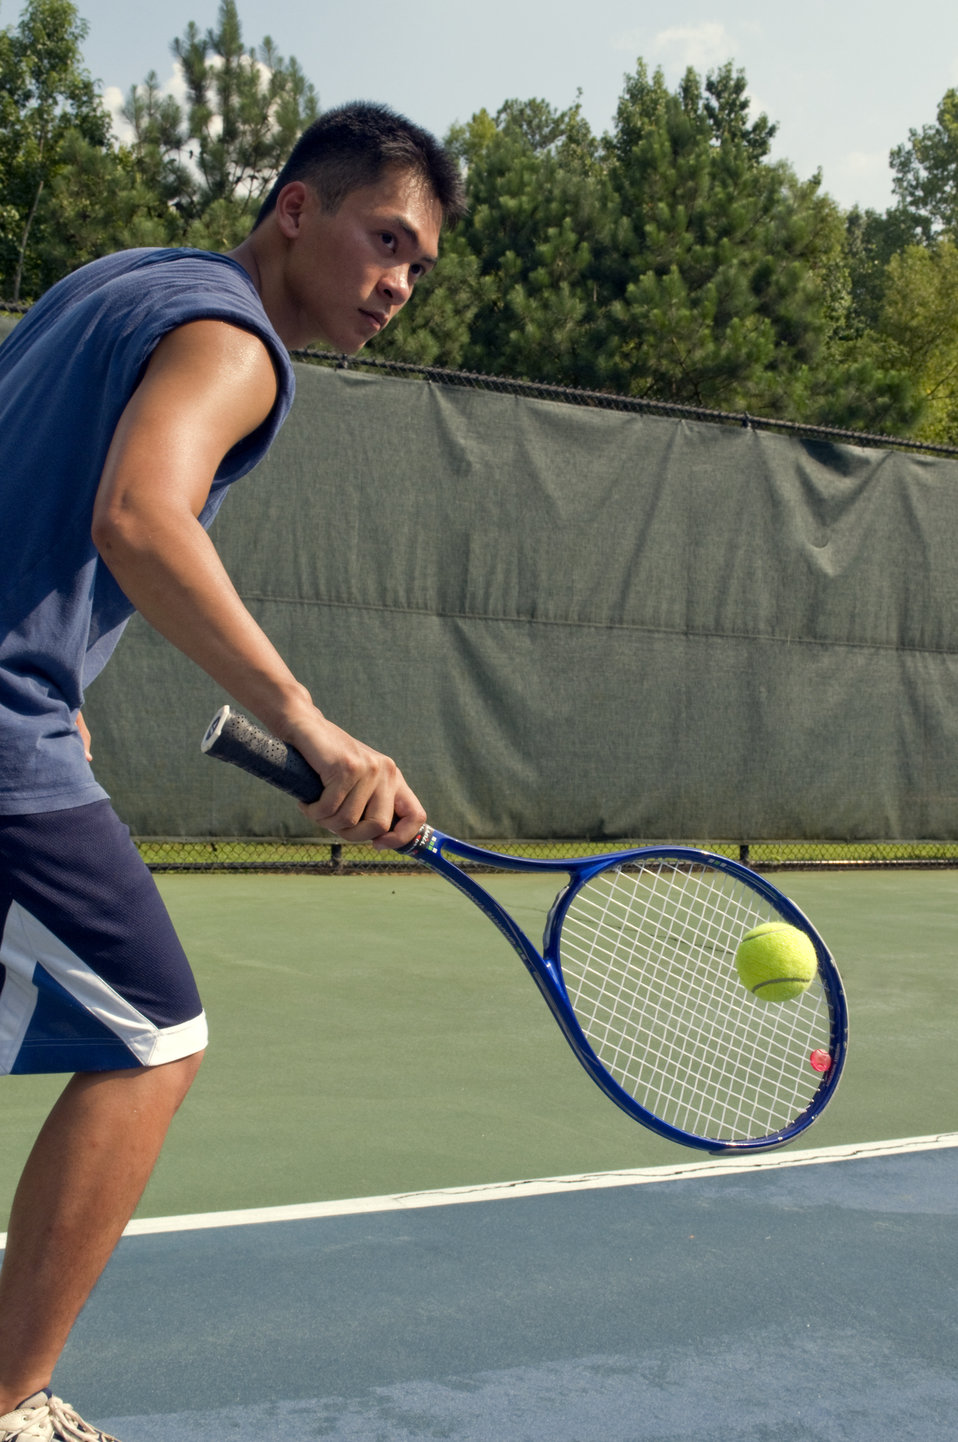 Caught in a mid-backhand swing, this young man was playing a game of tennis on the court. Wearing a darkly-colored tank top, loose-fitting s